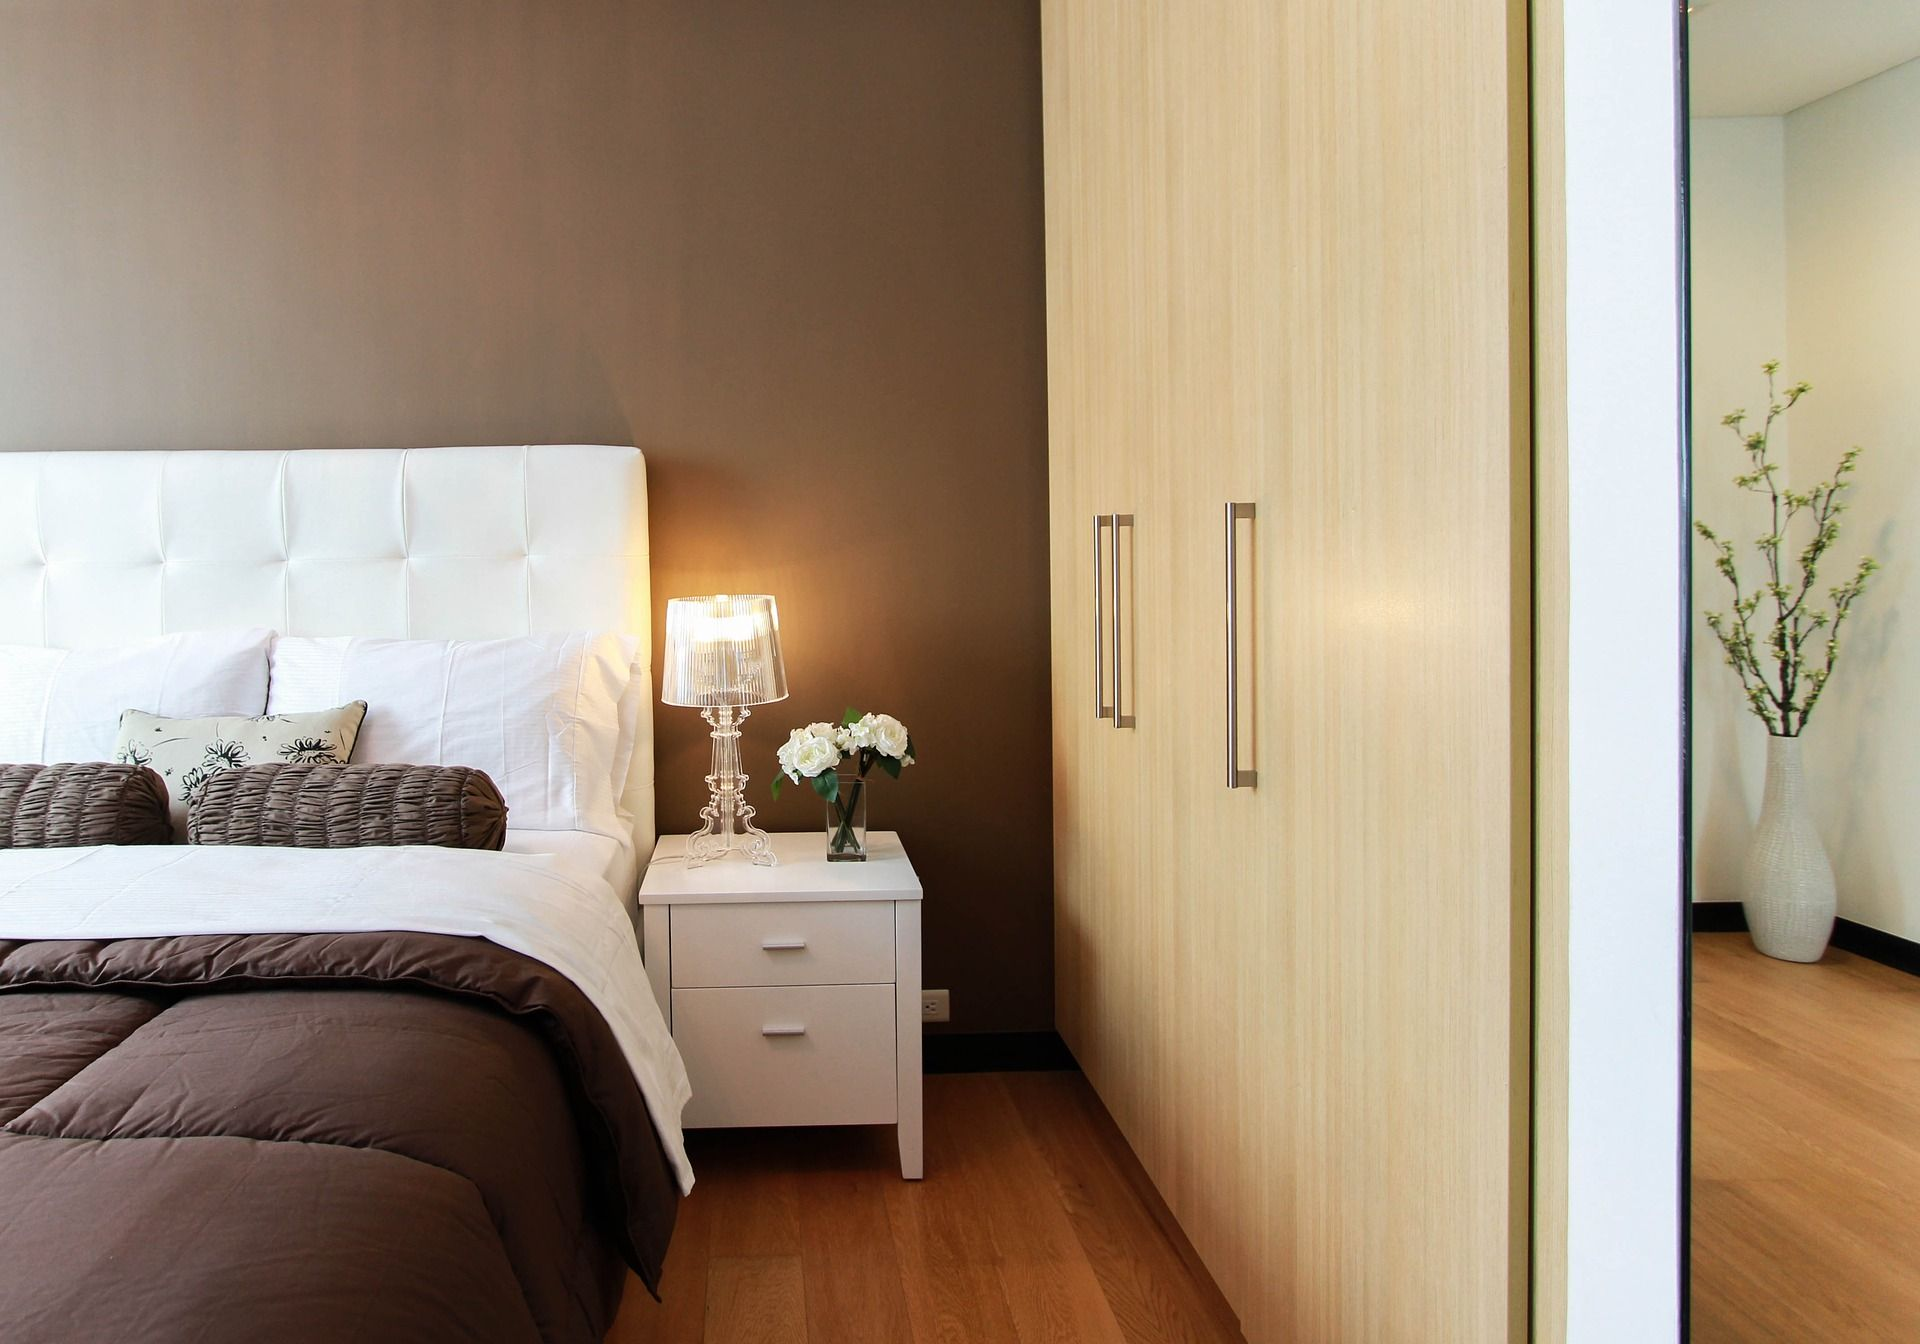 Bedroom with double bed side table and wardrobe